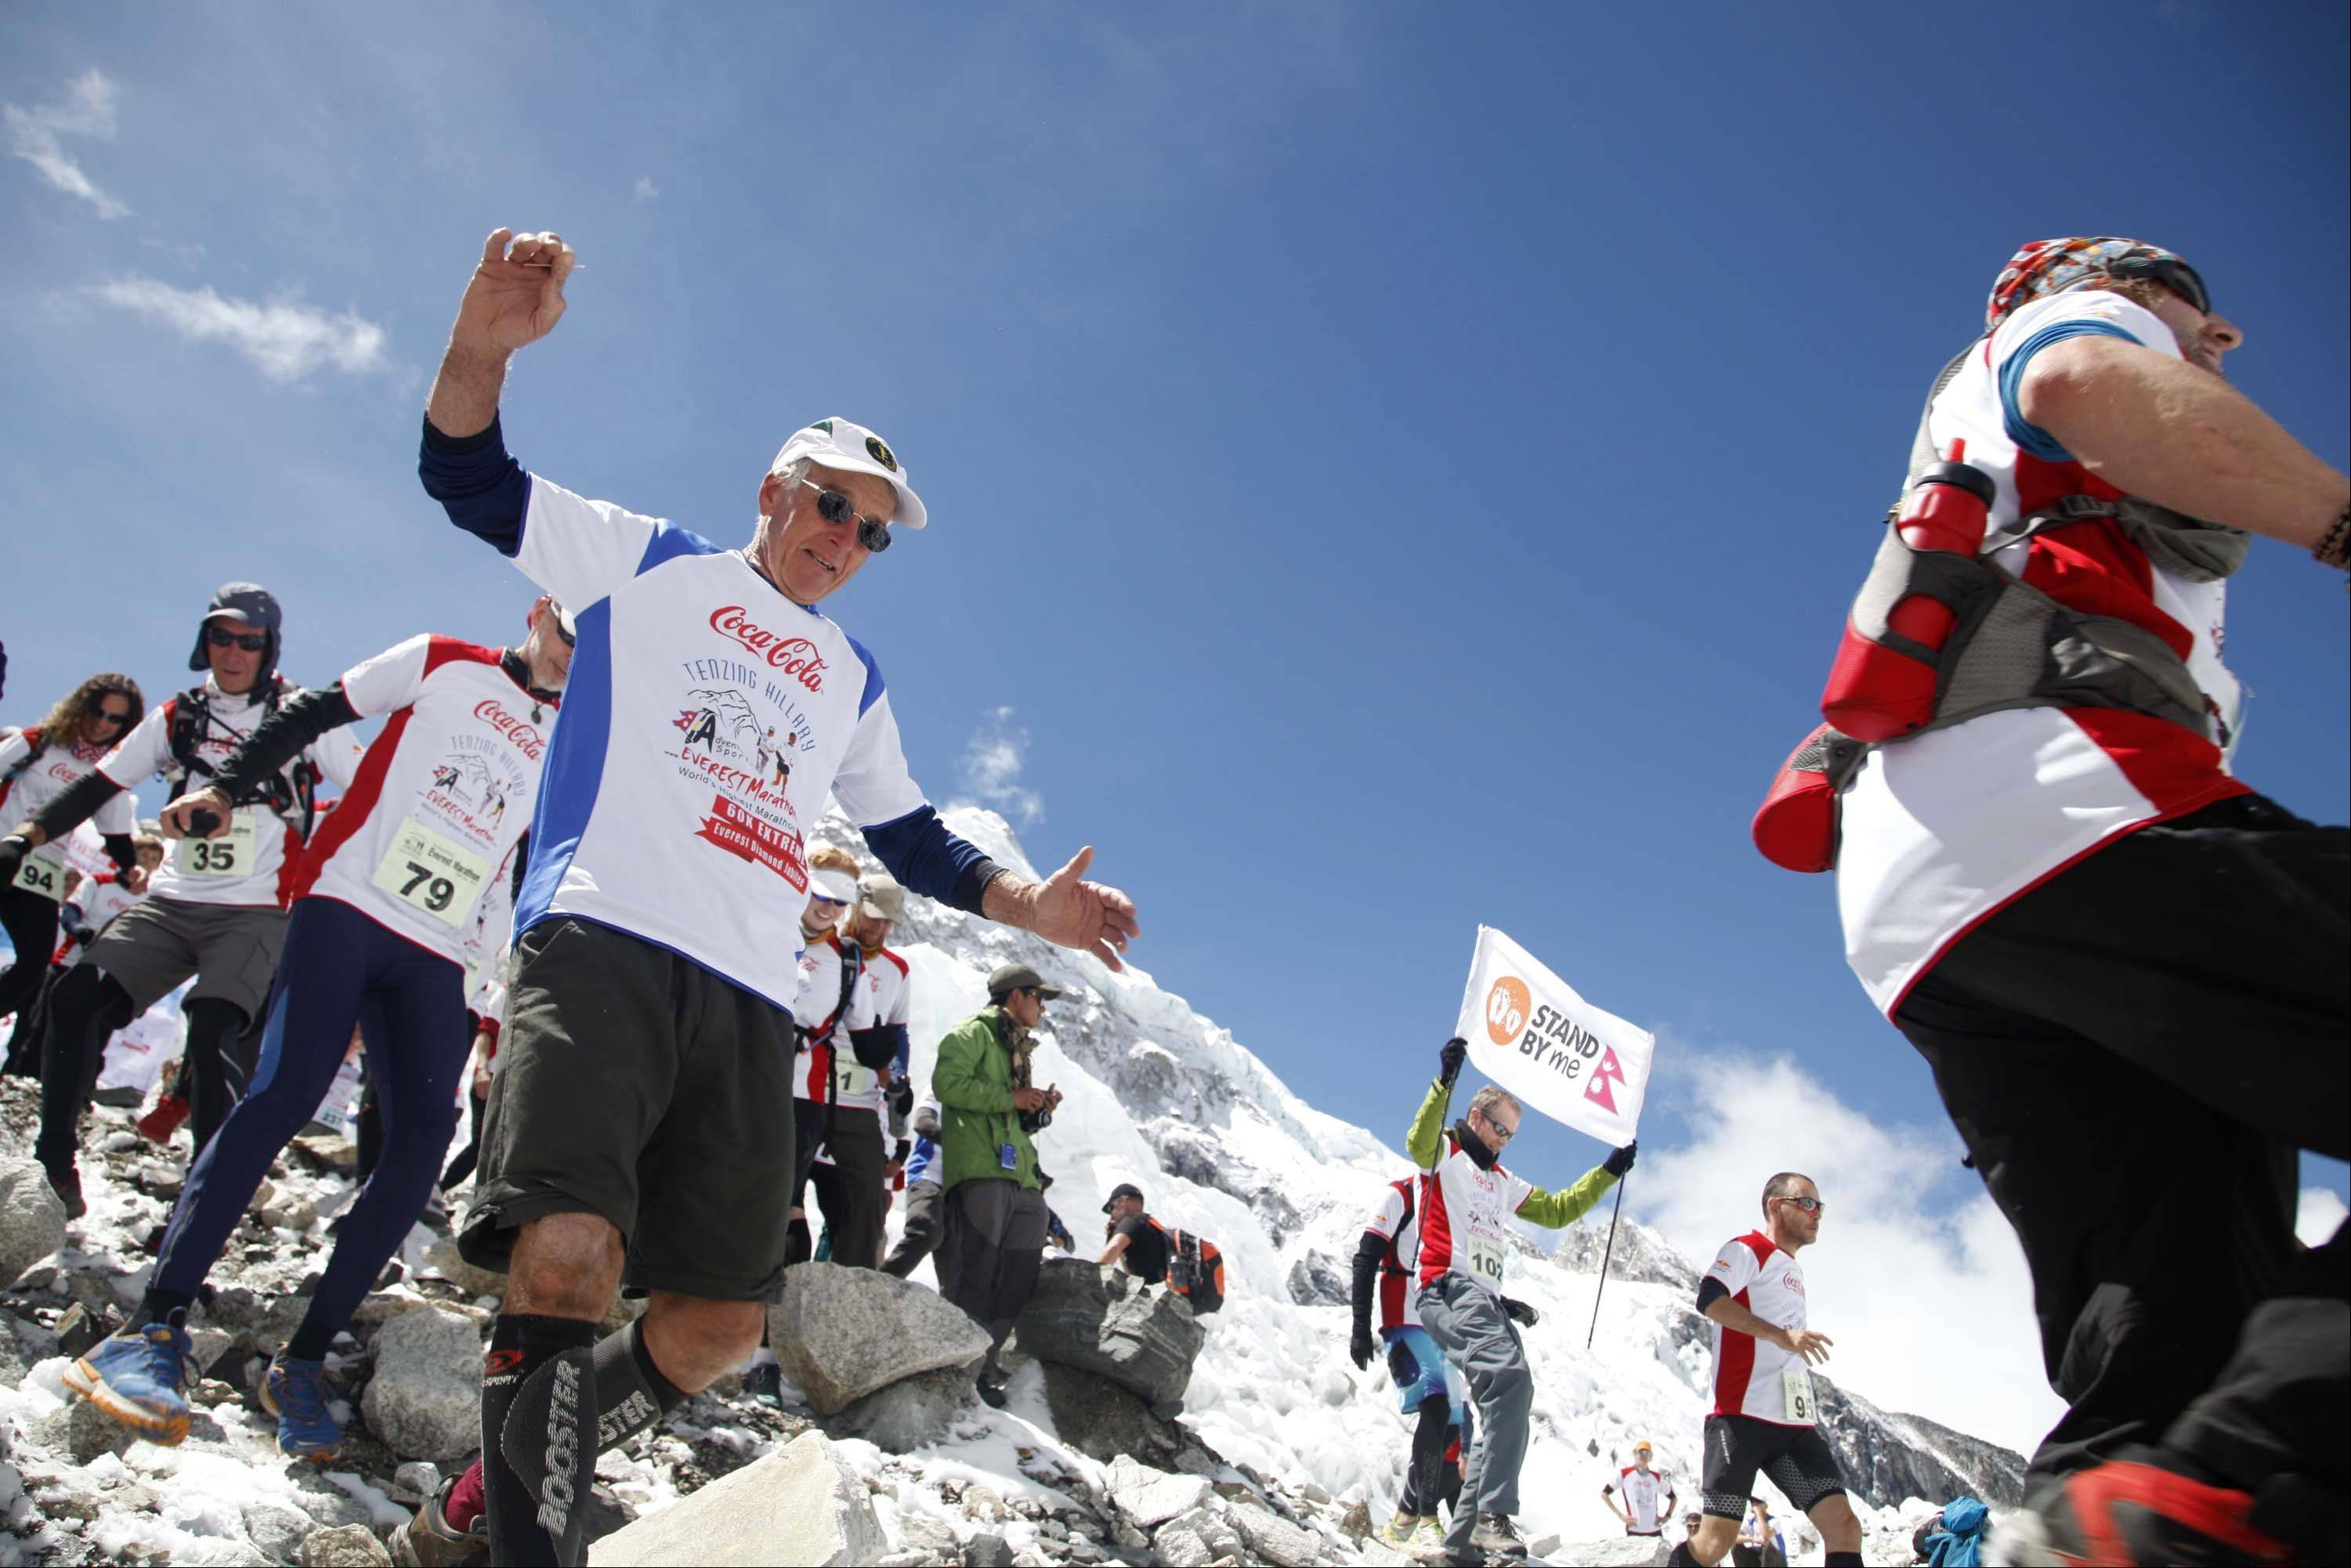 Participants of the Tenzing Hillary Everest Marathon begin their race at the Everest base camp in the Khumbu region of the Nepal Himalayas, Wednesday, May 29, 2013. Nepal celebrated the 60th anniversary of the conquest of Mount Everest on Wednesday by honoring climbers who followed in the footsteps of Edmund Hillary and Tenzing Norgay.